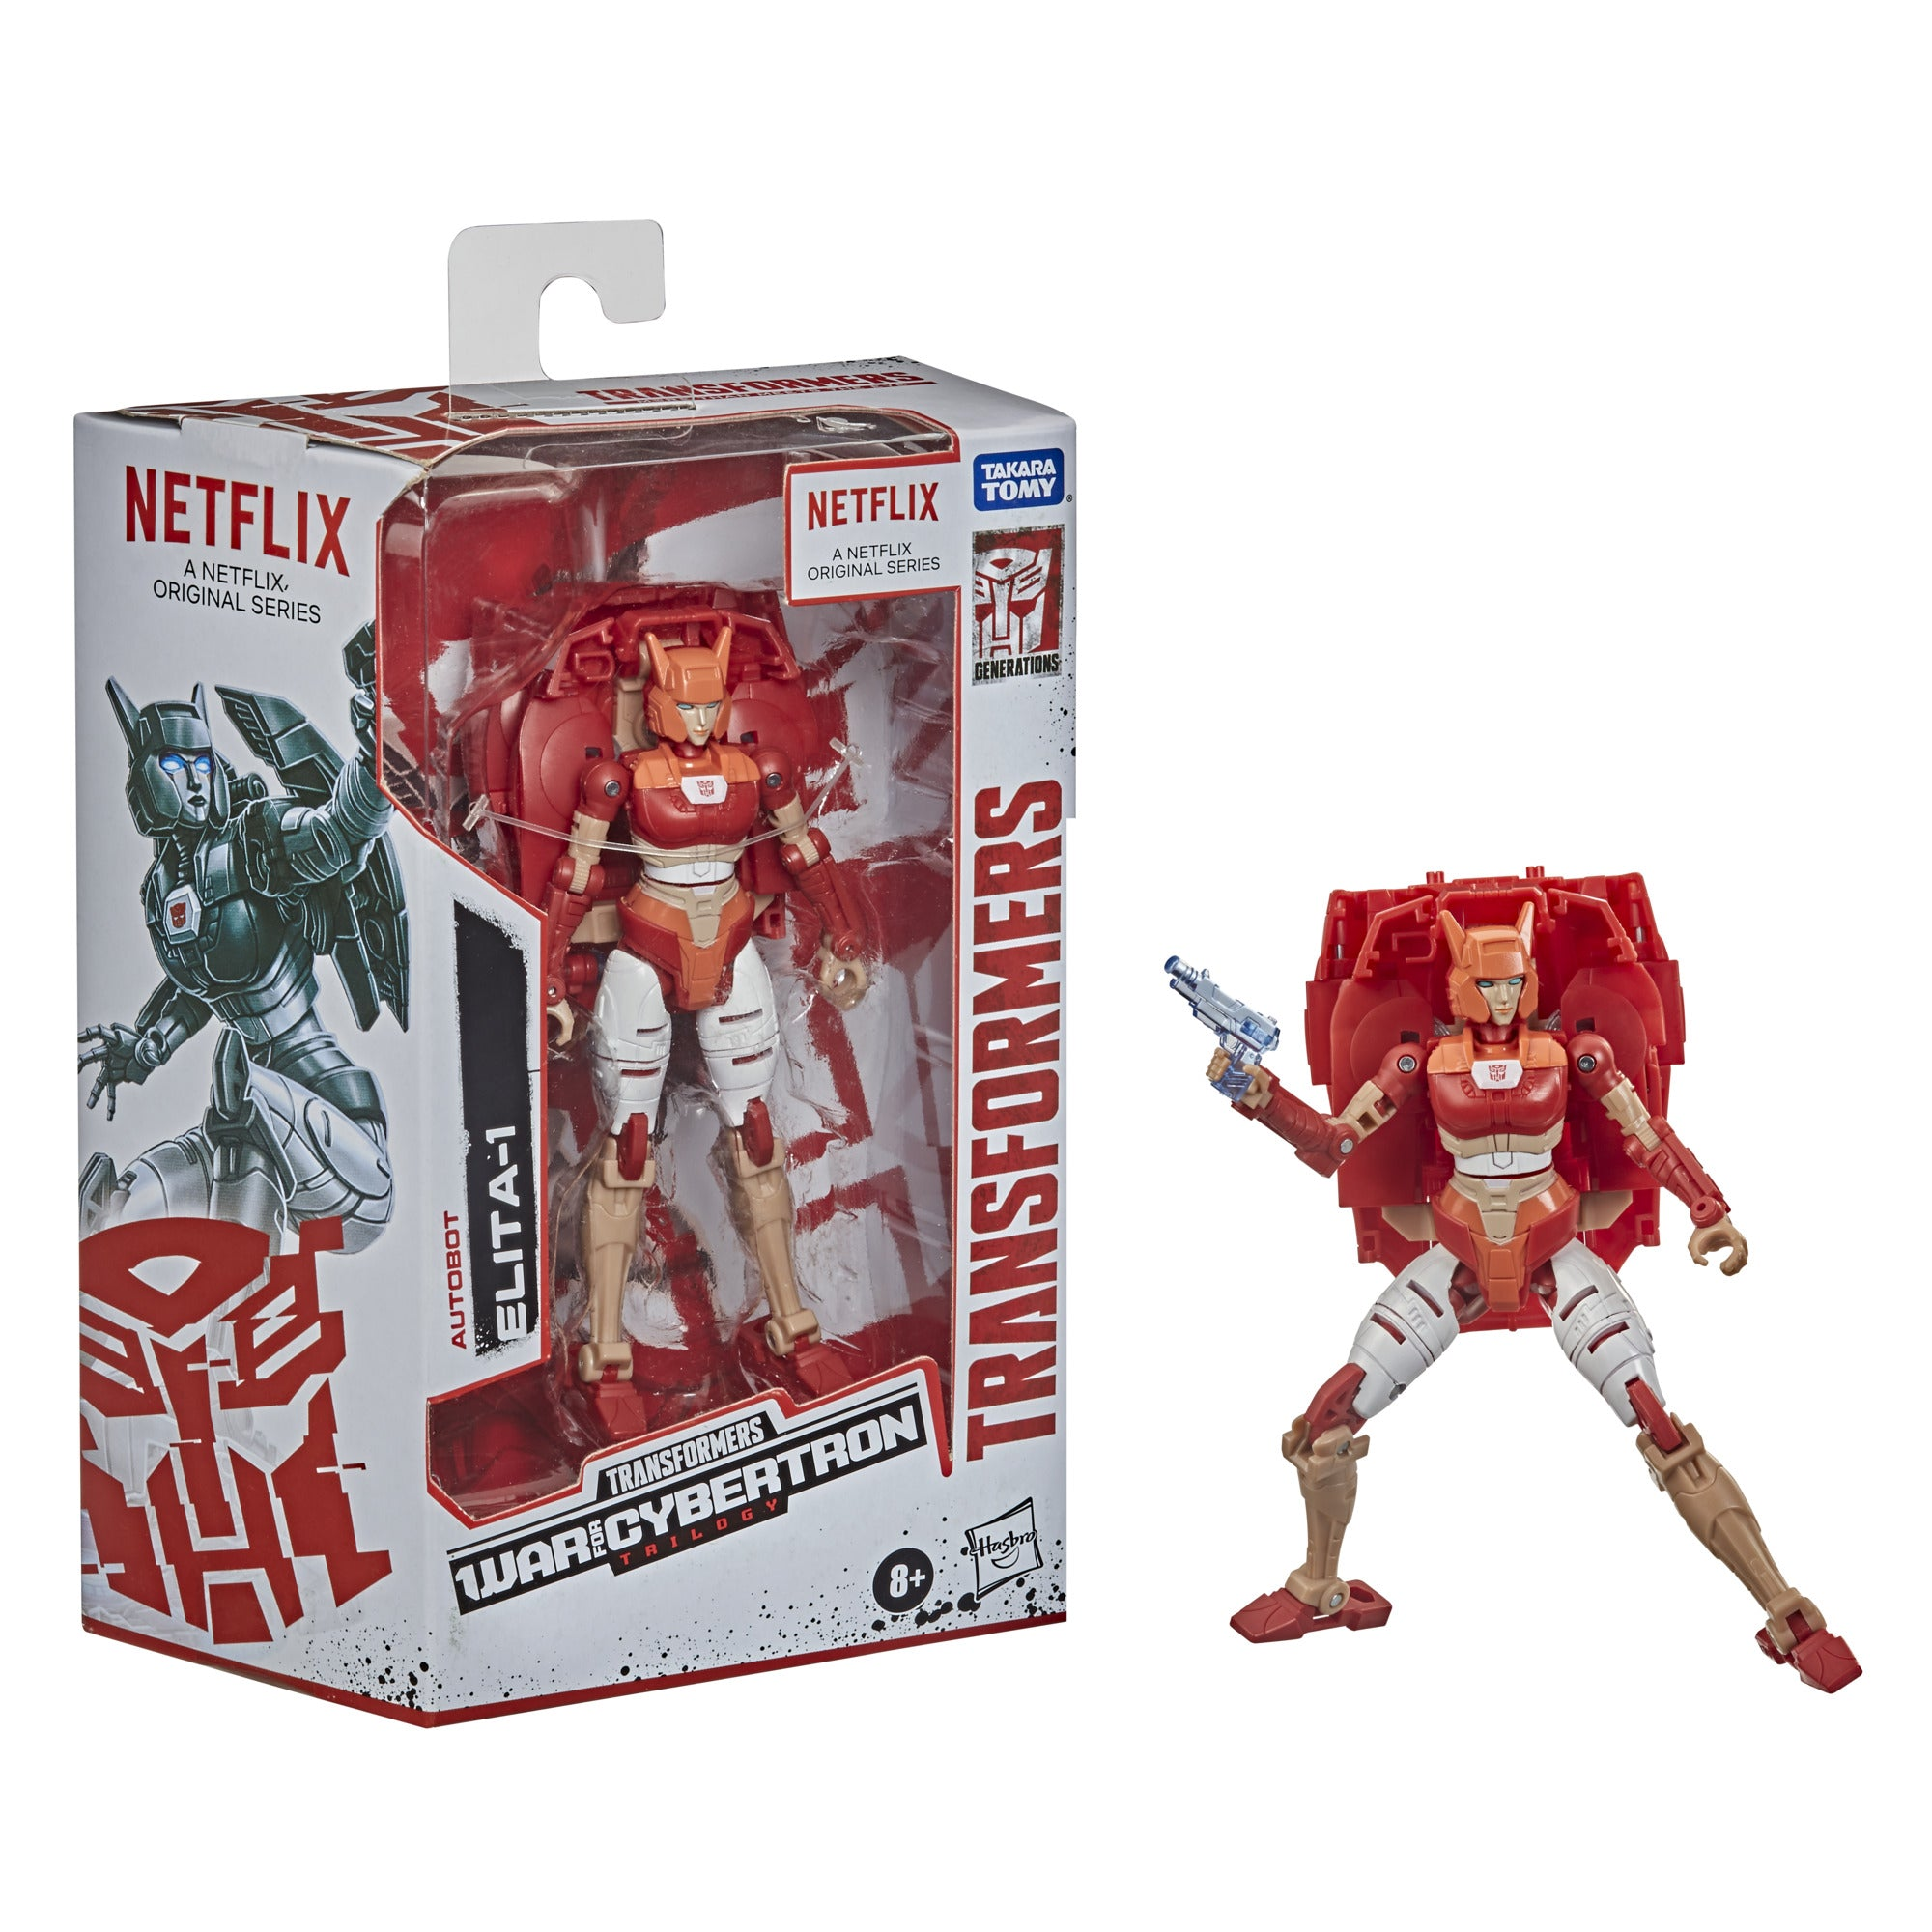 Transformers - War for Cybertron Trilogy Netflix Series - Autobot Elita-1 (F0703) Action Figure